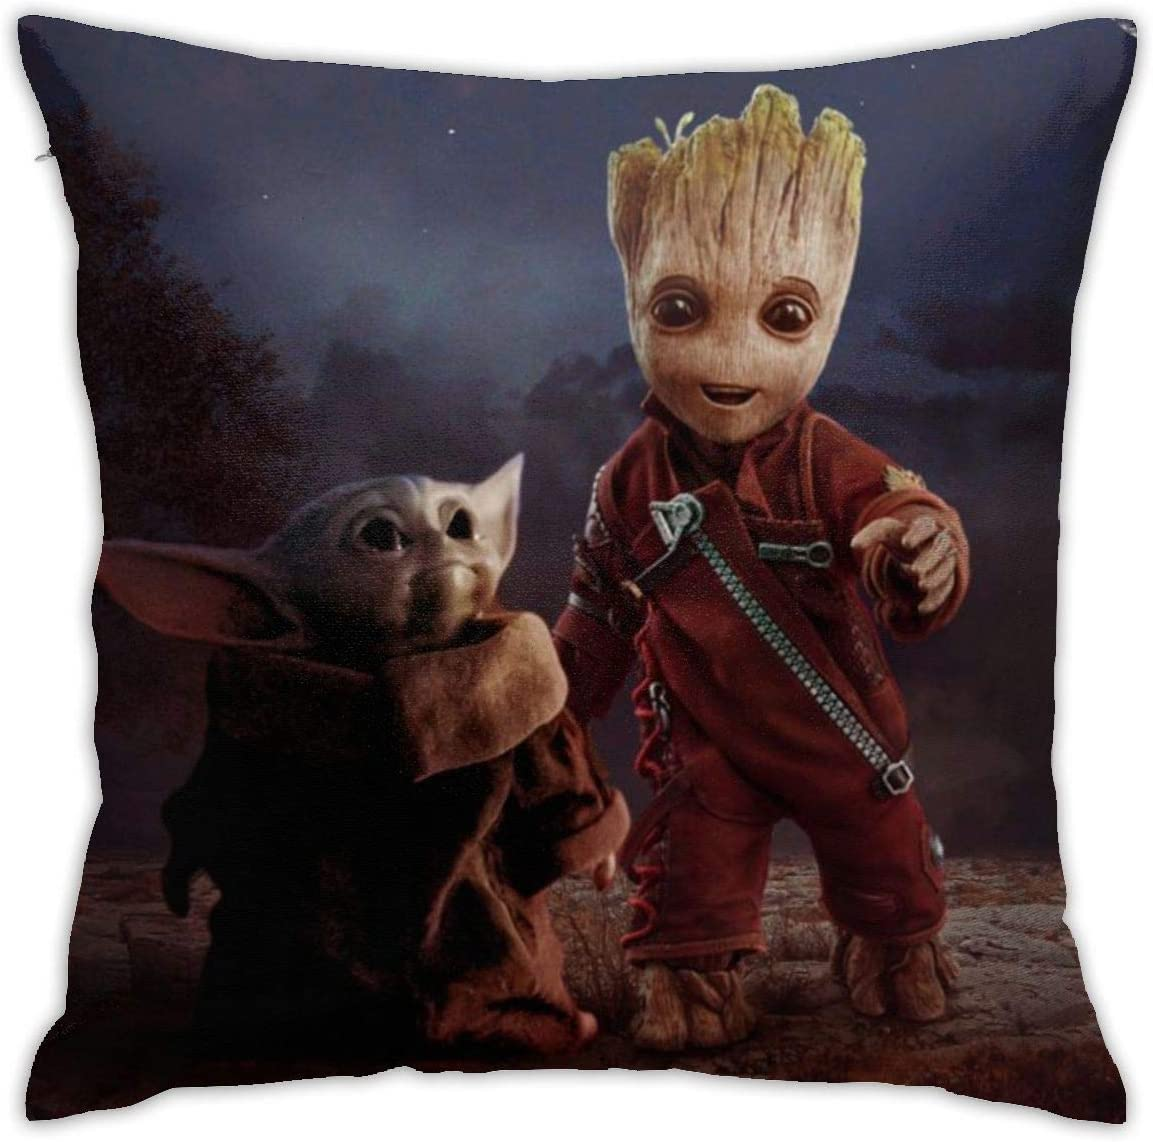 Groot and Baby-Yo-da The Mandalorian Throw Pillow Case Cover Soft Square Pillow Case for Decorative Bedroom/Livingroom/Sofa/Farm House - Couch Pillow Cushion Covers